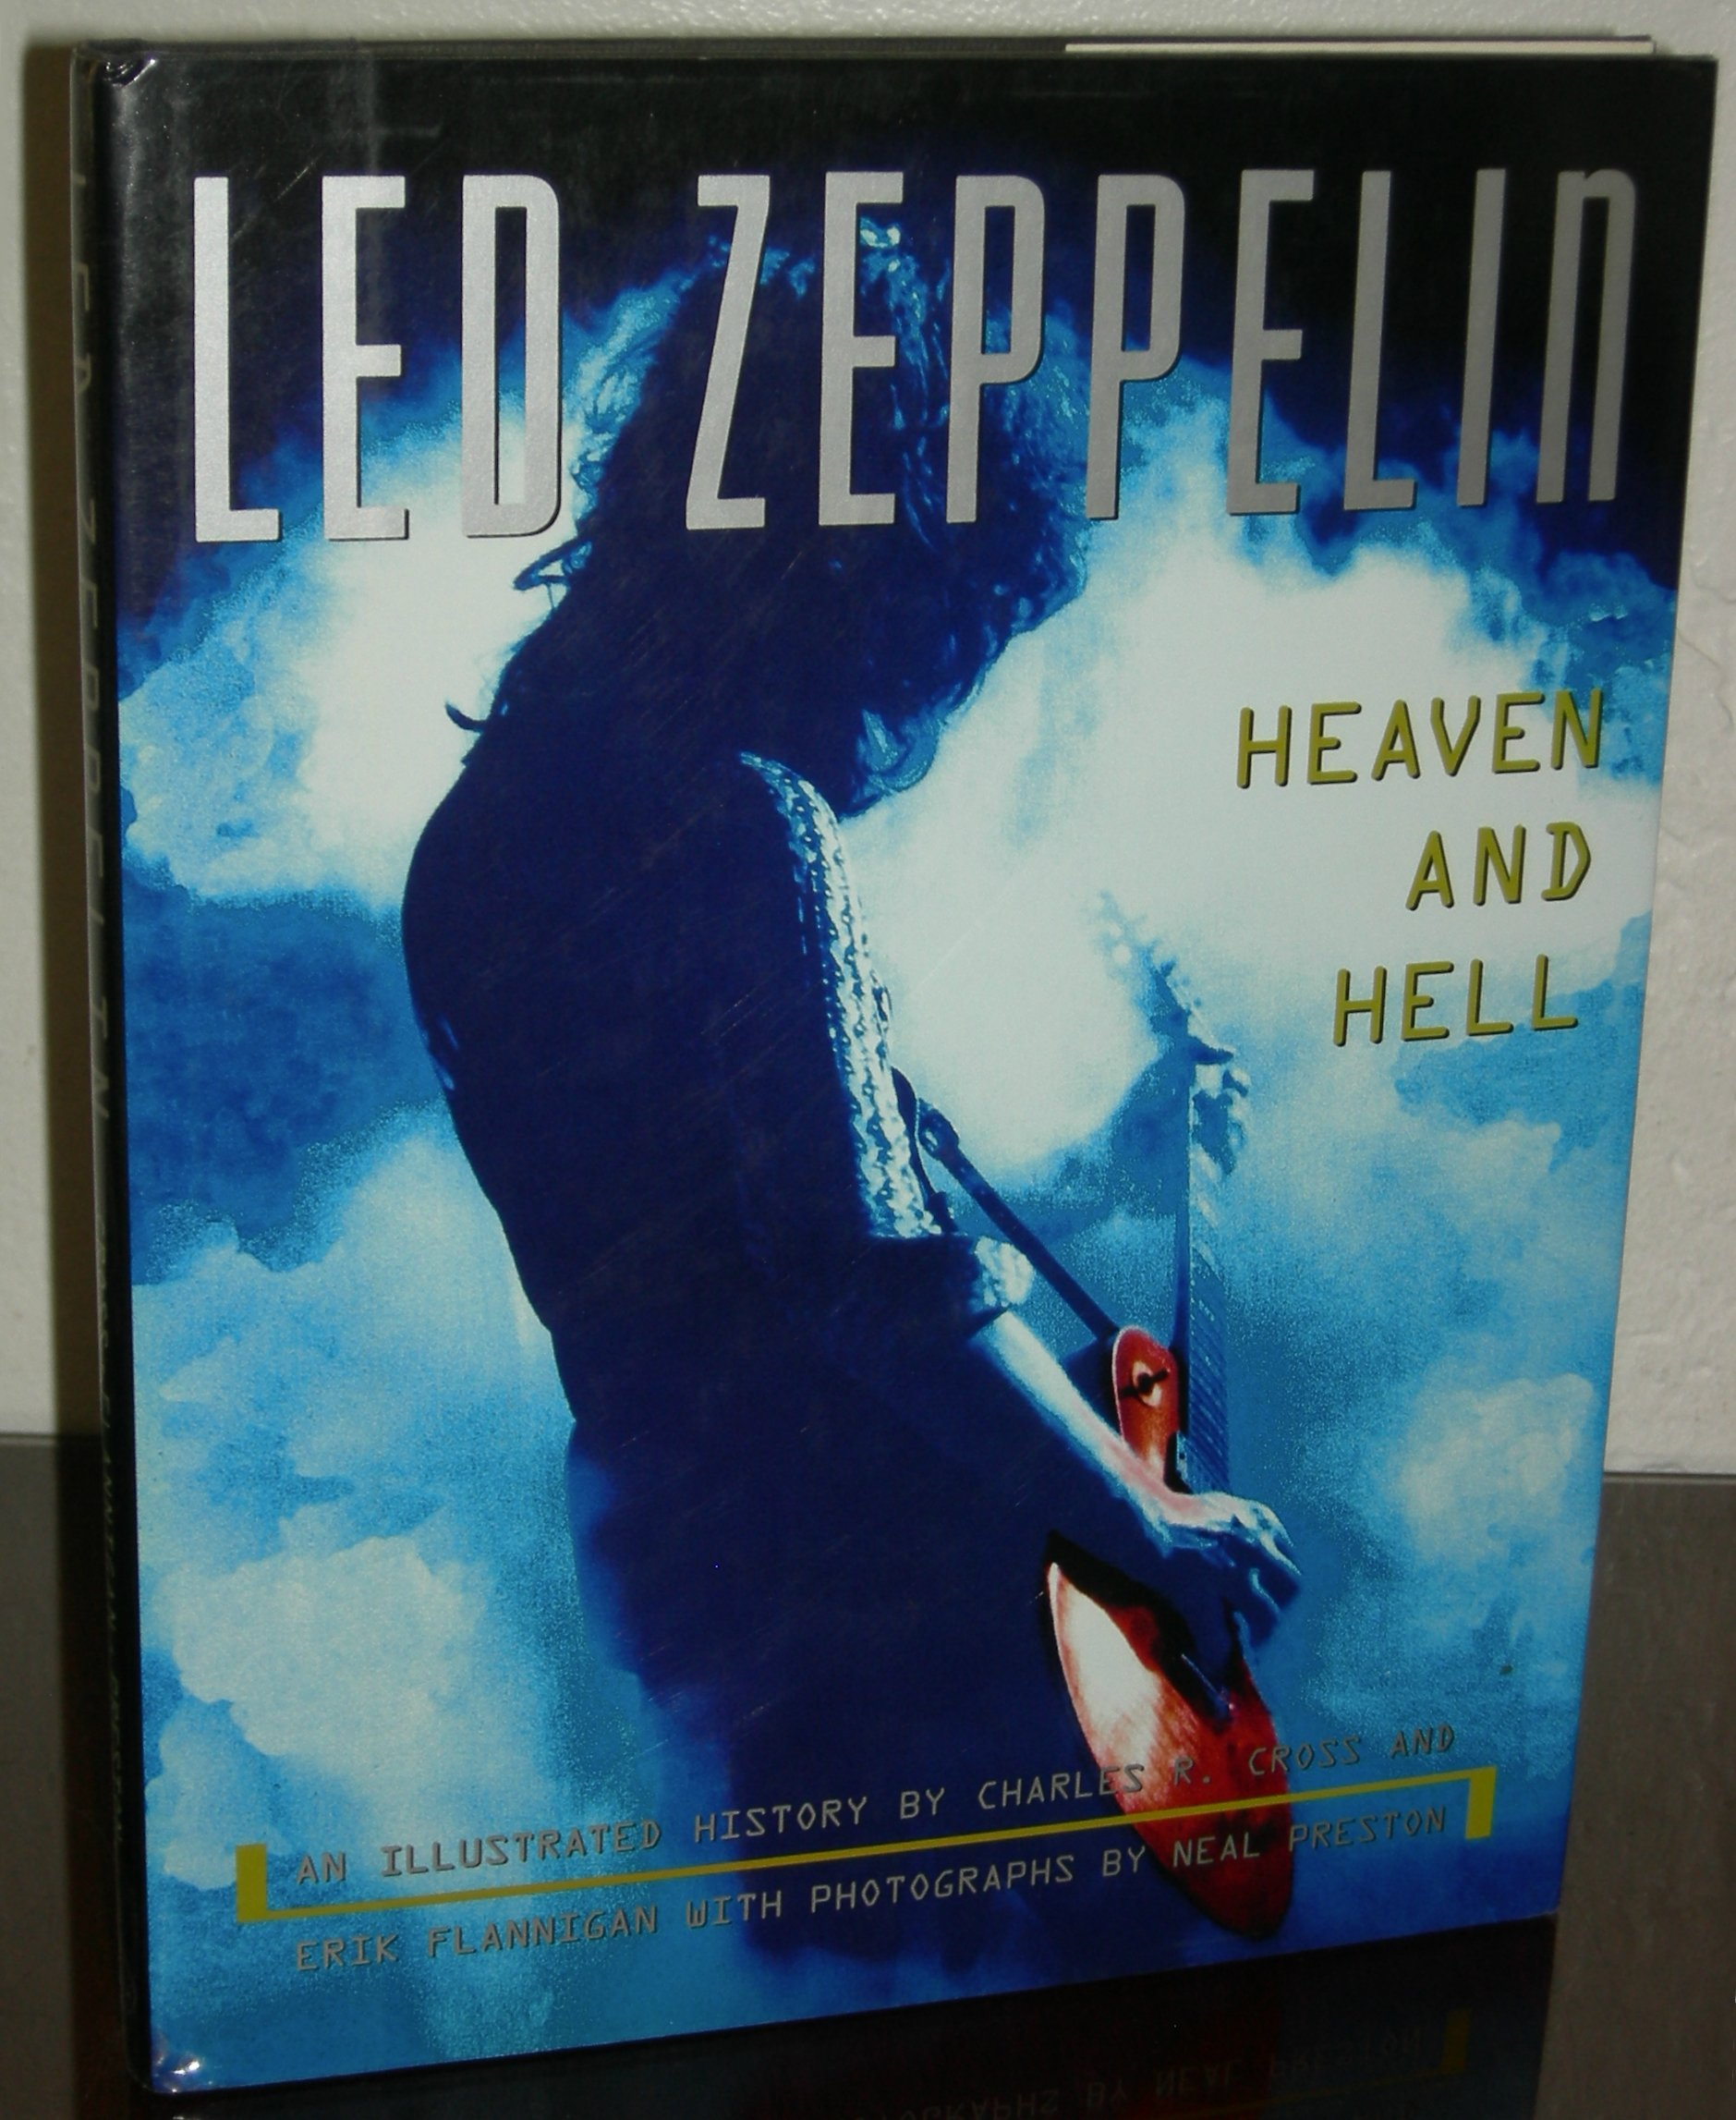 Charles Cross/Eric Flanagan/Neal Preston - Led Zeppelin - Heaven and Hell. An illustrated history